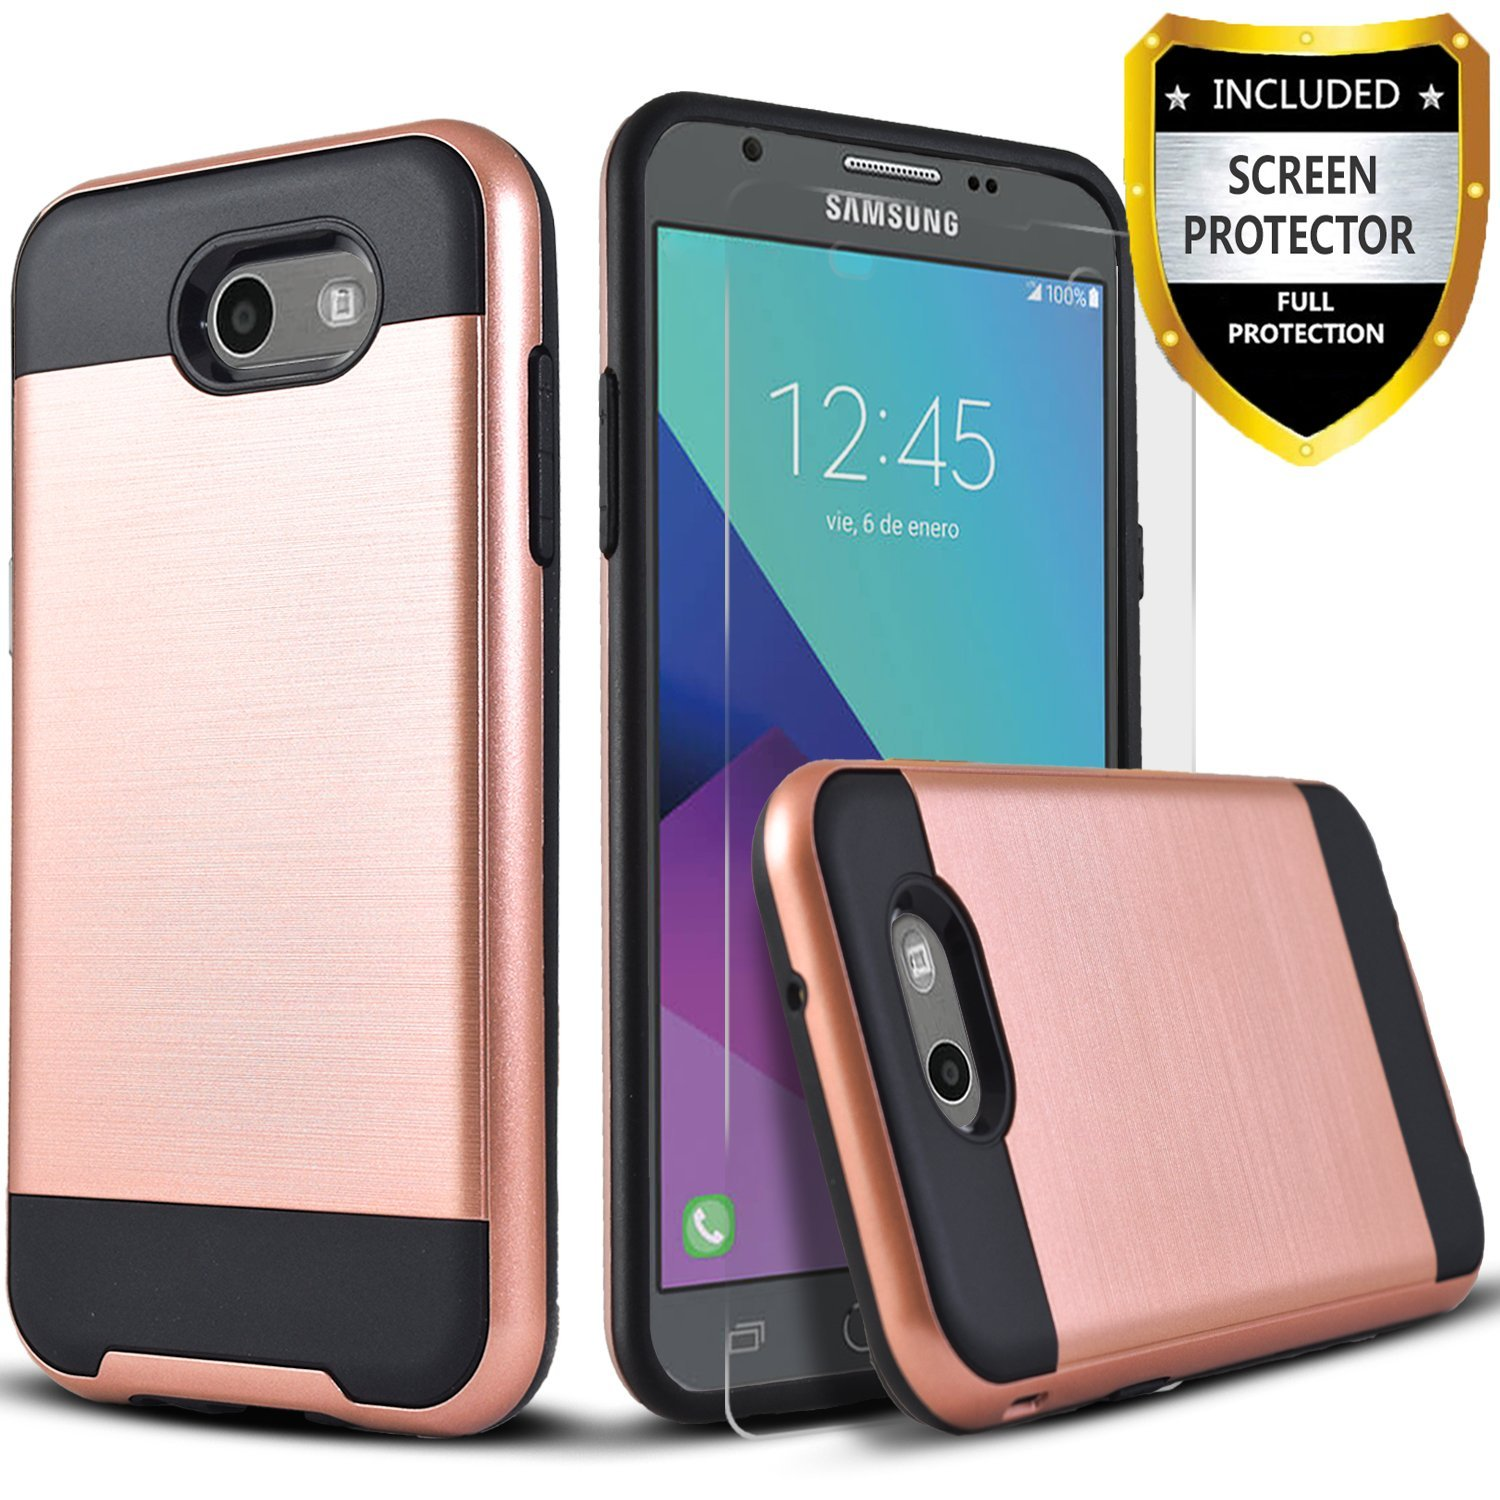 Galaxy J5 Prime Case, 2-Piece Style Hybrid Shockproof Hard Case Cover With [Premium Screen Protector] + Circlemall And Stylus Pen For Samsung Galaxy J5 Prime - Black